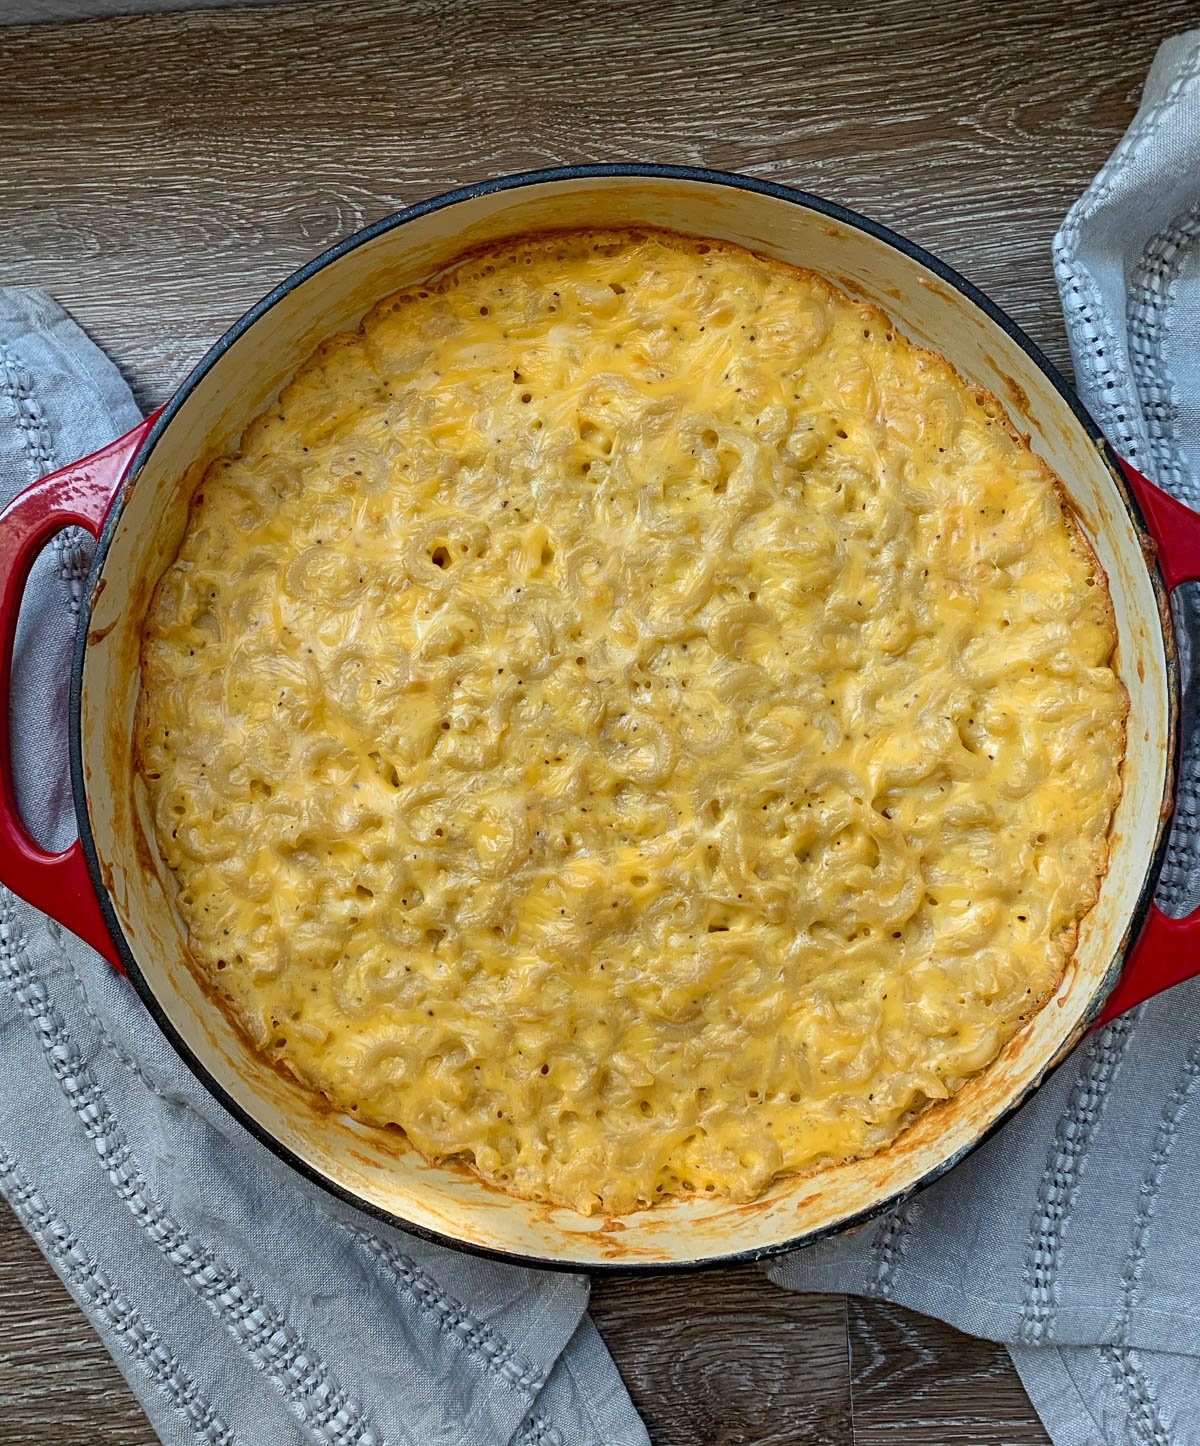 mac & cheese fresh out of the oven